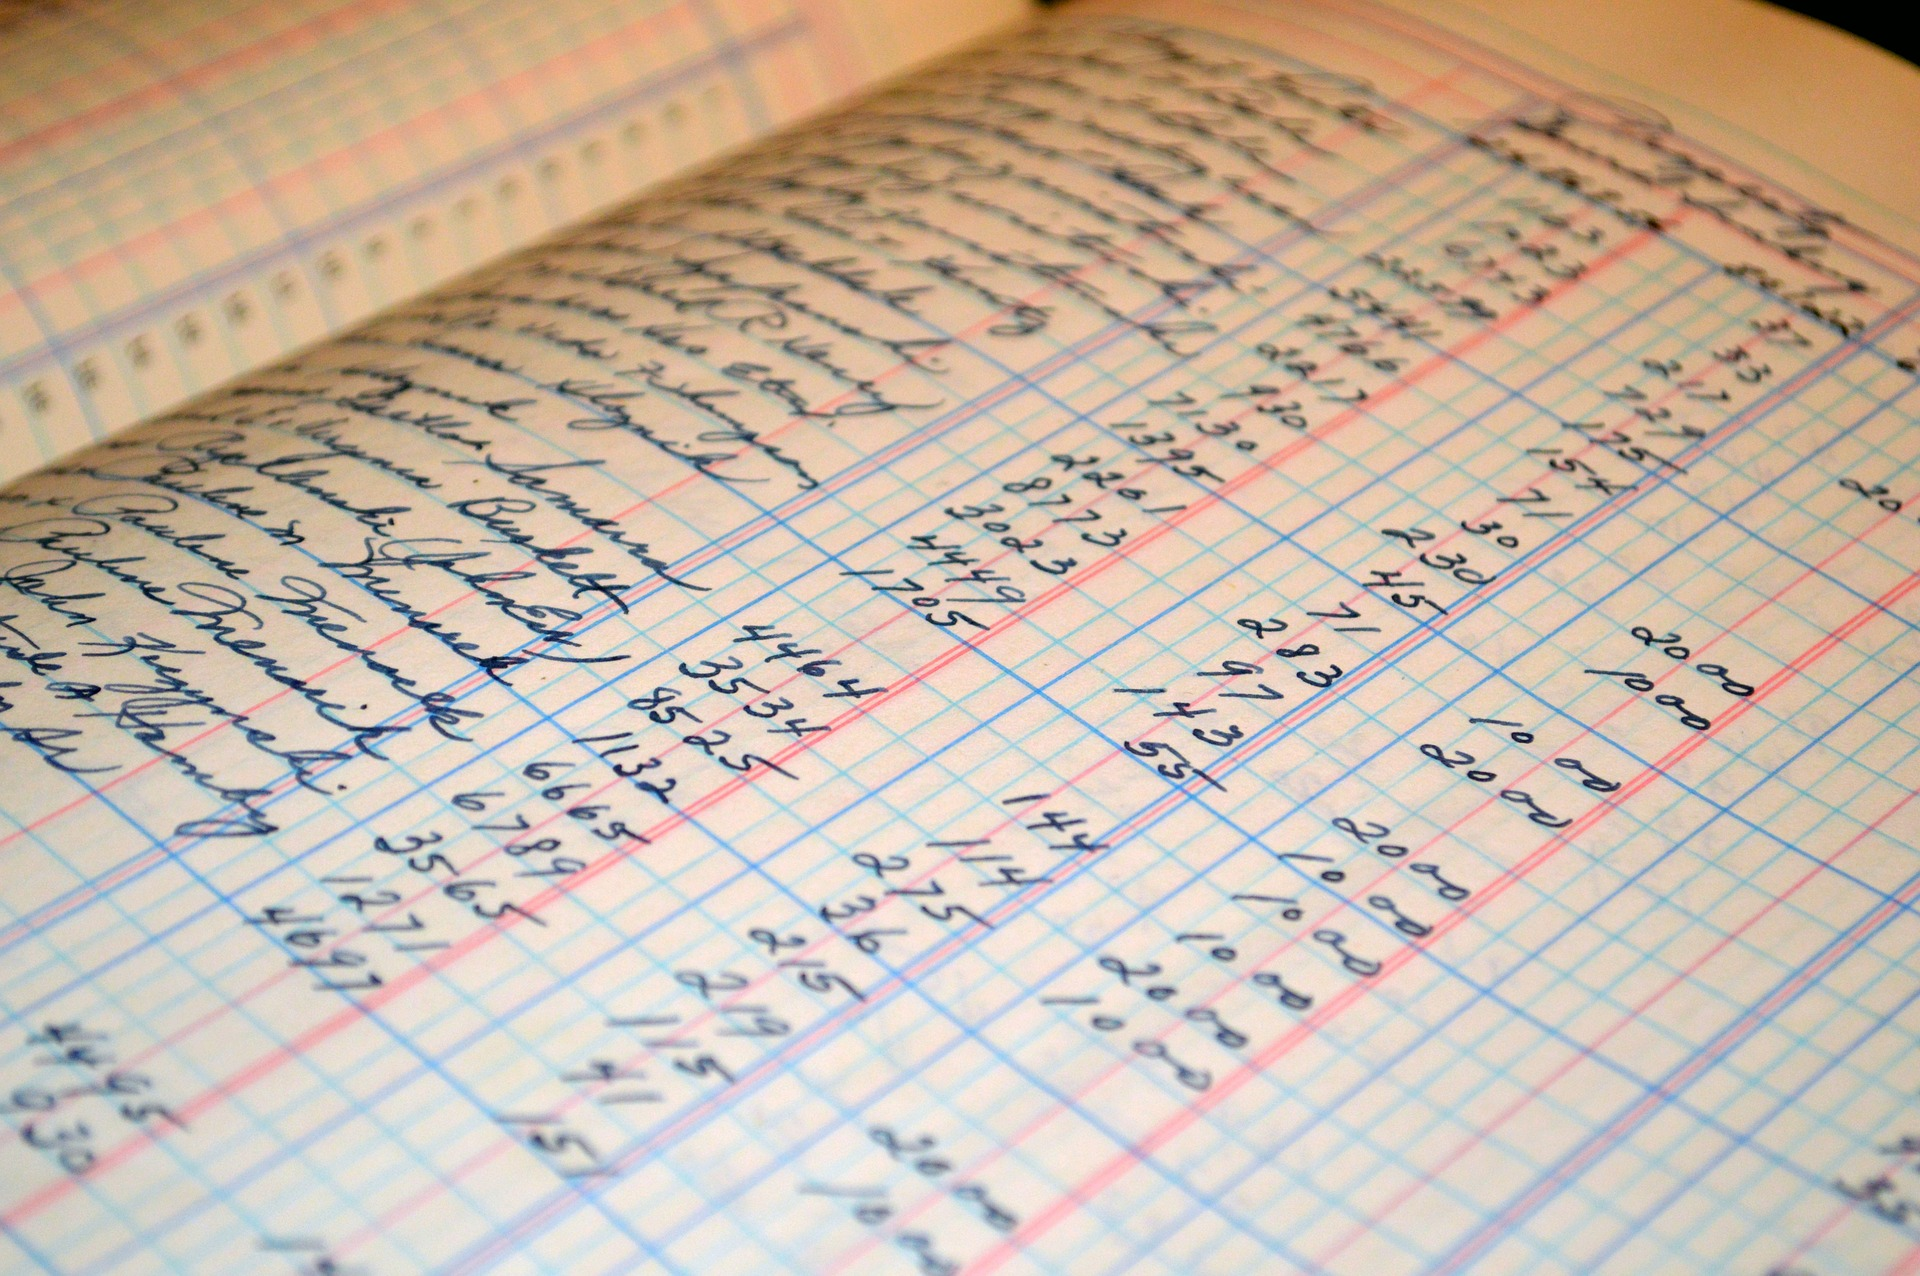 Image of an accounting ledger